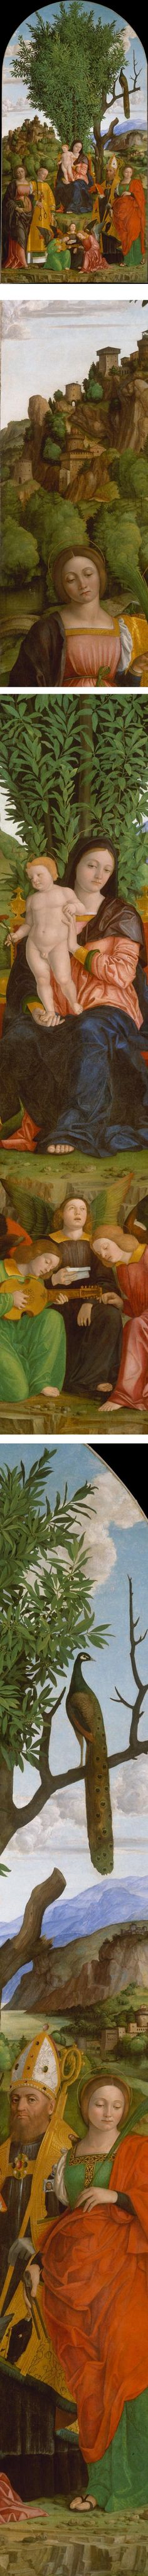 Eye Candy for Today: Girolamo dai Libri's Madonna and Child with Saints.  Girolamo dai Libri (1474/1475 – July 2, 1555) was an Italian illuminator of manuscripts and painter of altarpieces, working in an early-Renaissance style.He was born and mainly active in Verona. His father was Francesco dai Libri, and was so named because he was an illuminator of books.